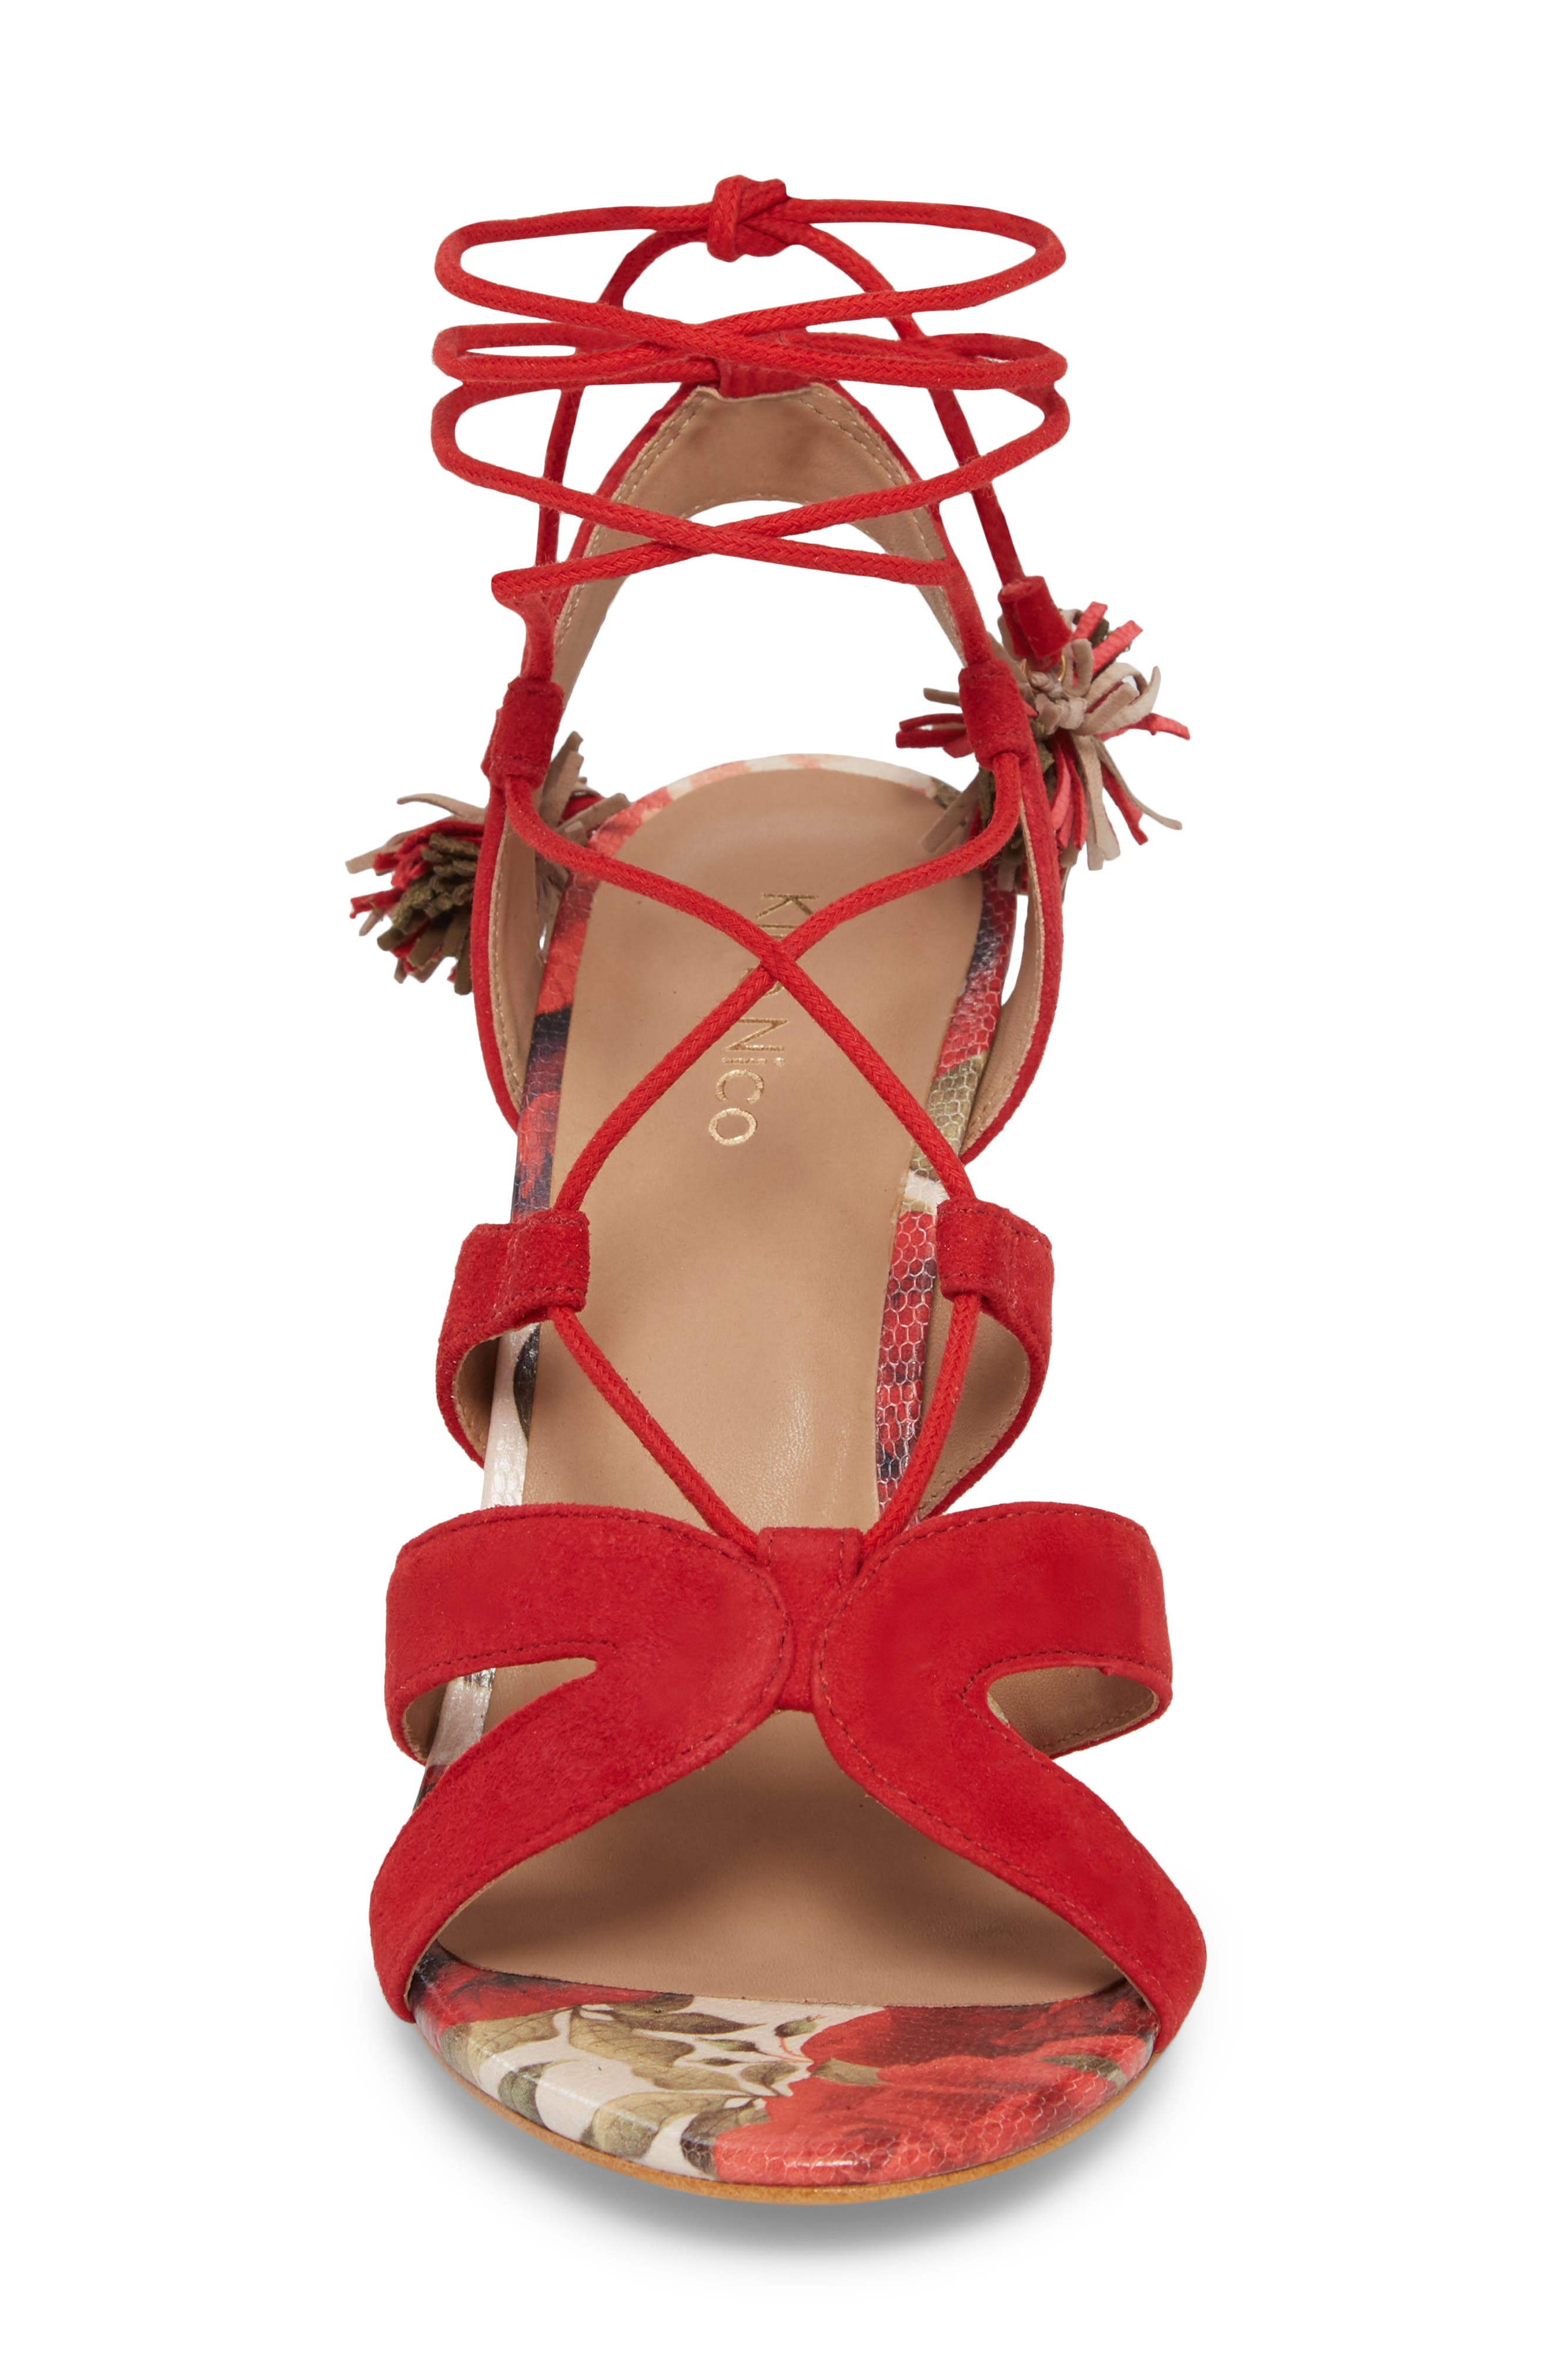 Maxine Sandal,                             Alternate thumbnail 4, color,                             Red Suede